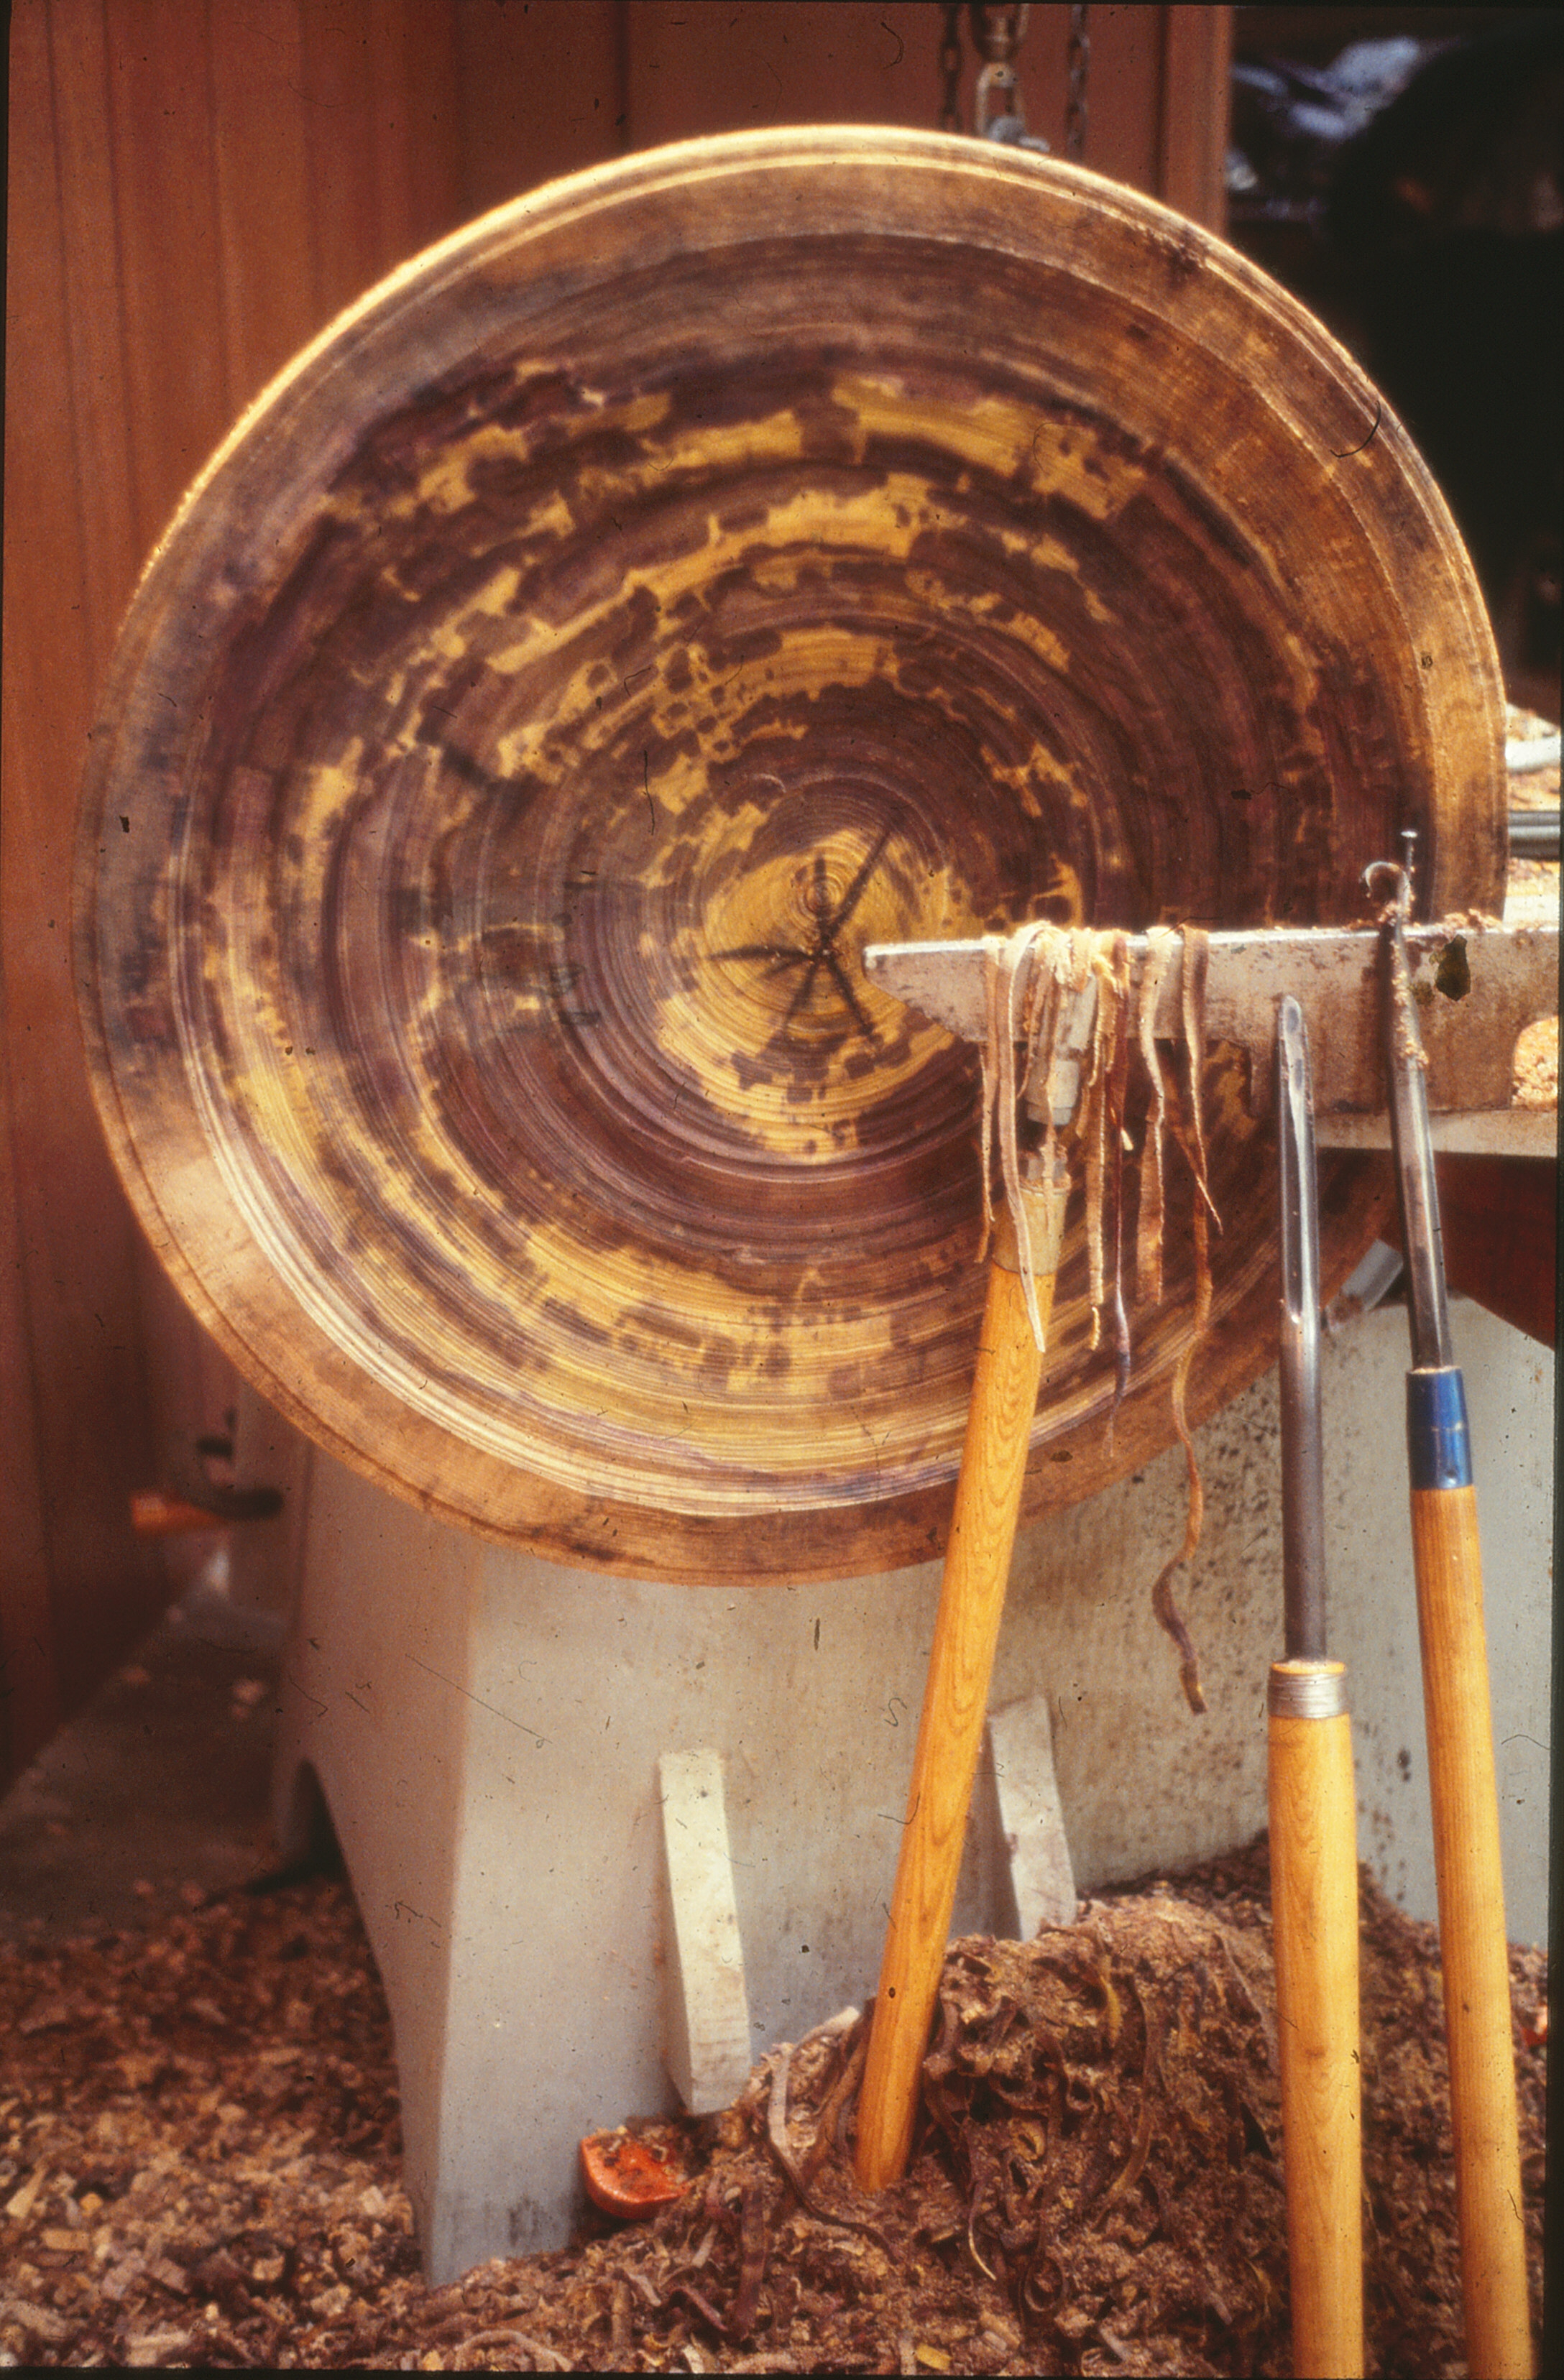 Fig. 13.  Roughed out plater form turned by Albert LeCoff and Ed Moulthrop, ca. 1977. The Center for Art in Wood's Fleur and Charles Bresler Research Library. Photo: Albert LeCoff